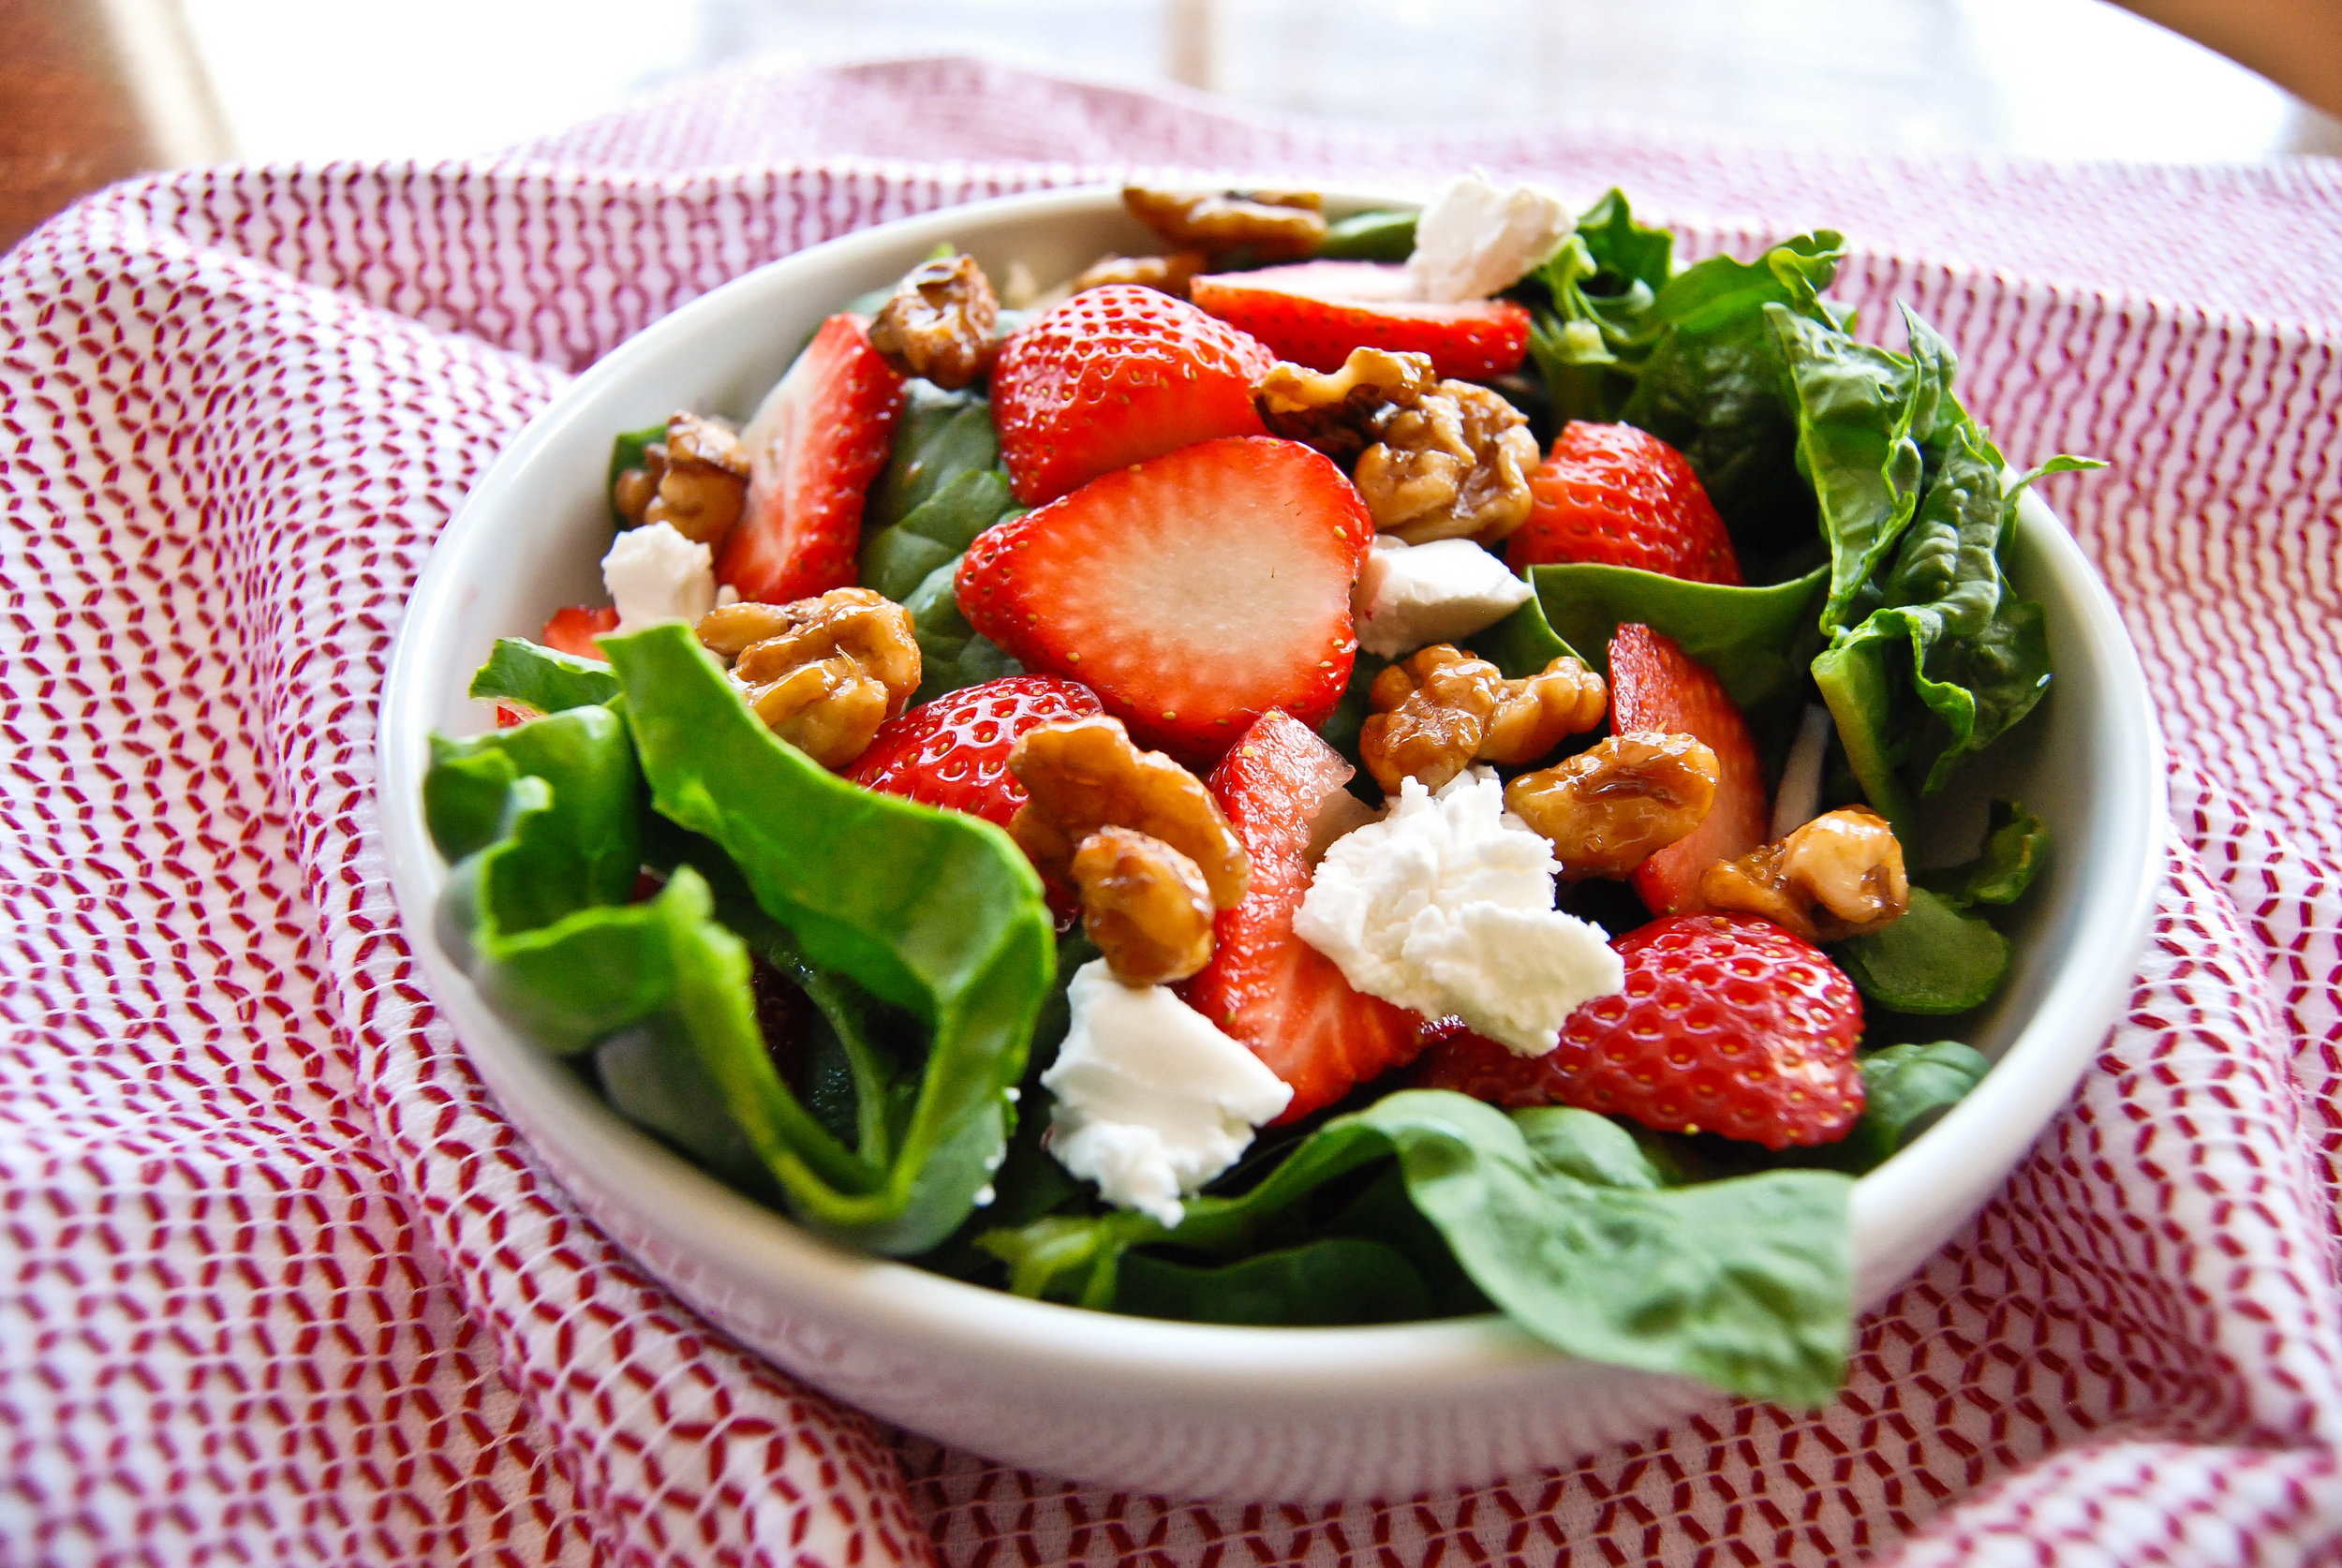 Strawberry Goat Cheese And Walnut Spinach Salad | Front Range Fed